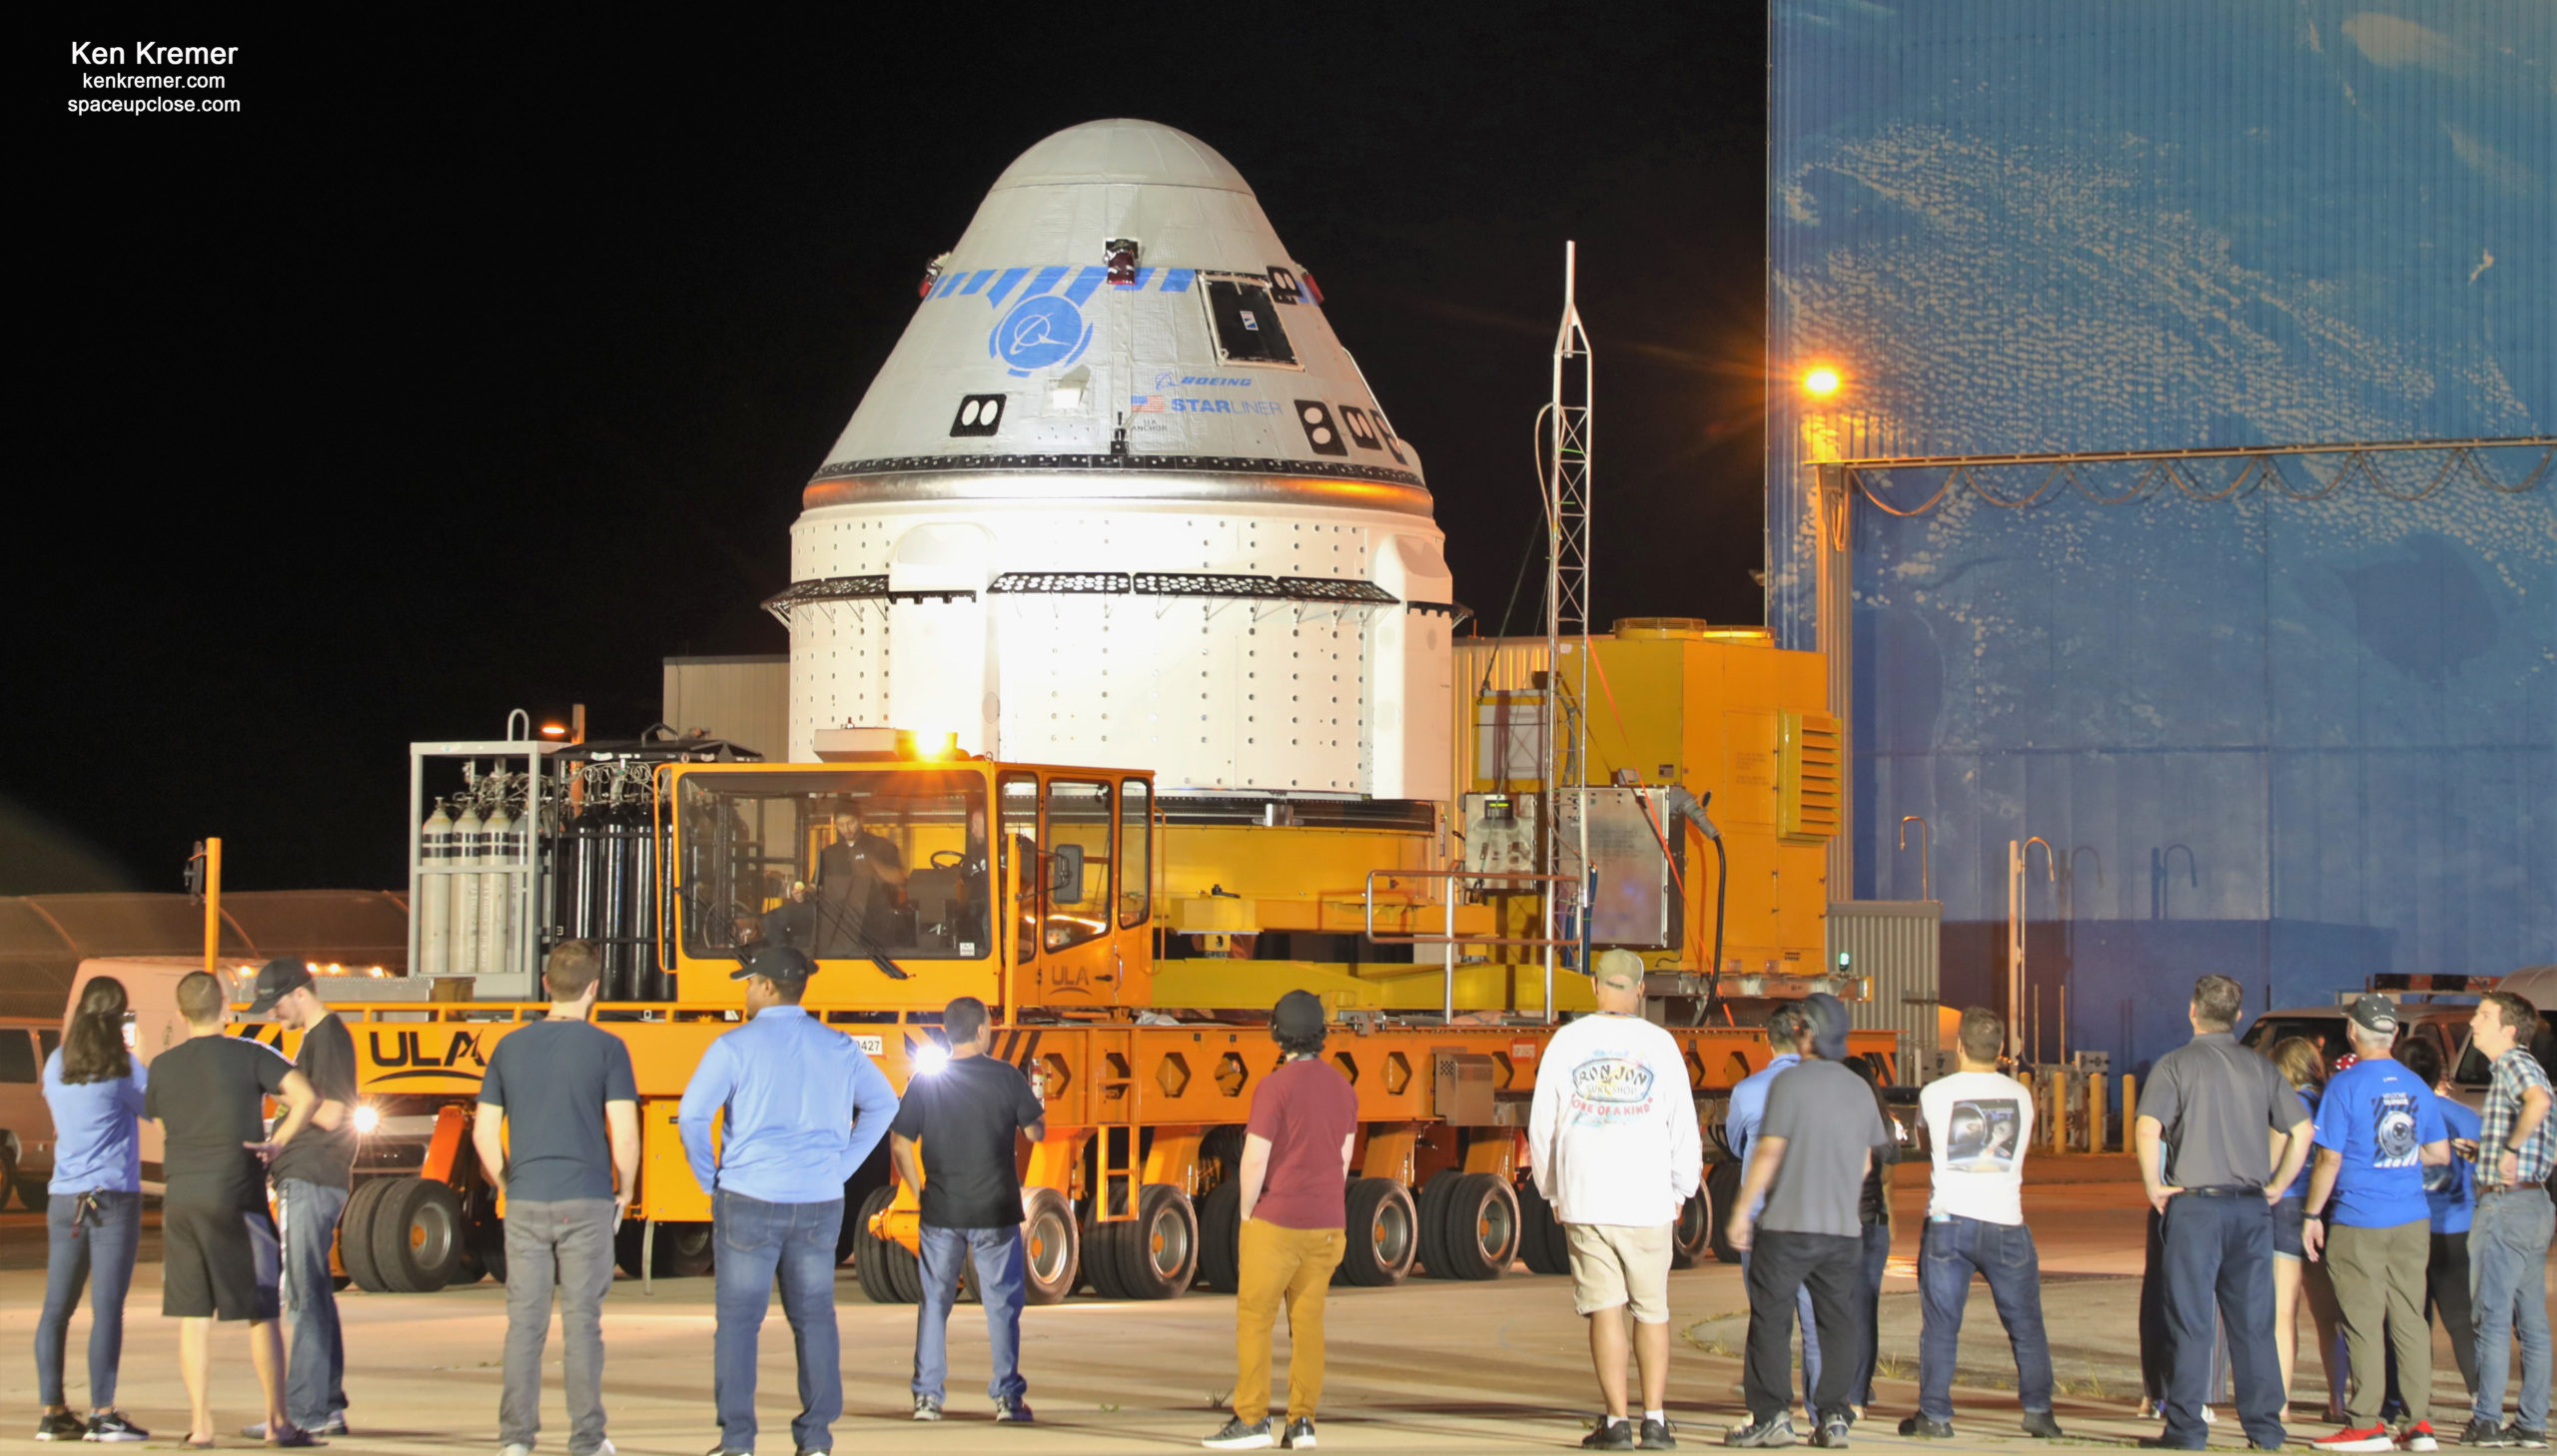 NASA Approves Boeing Starliner Capsule for 2nd Unpiloted Test Flight to ISS: Photos